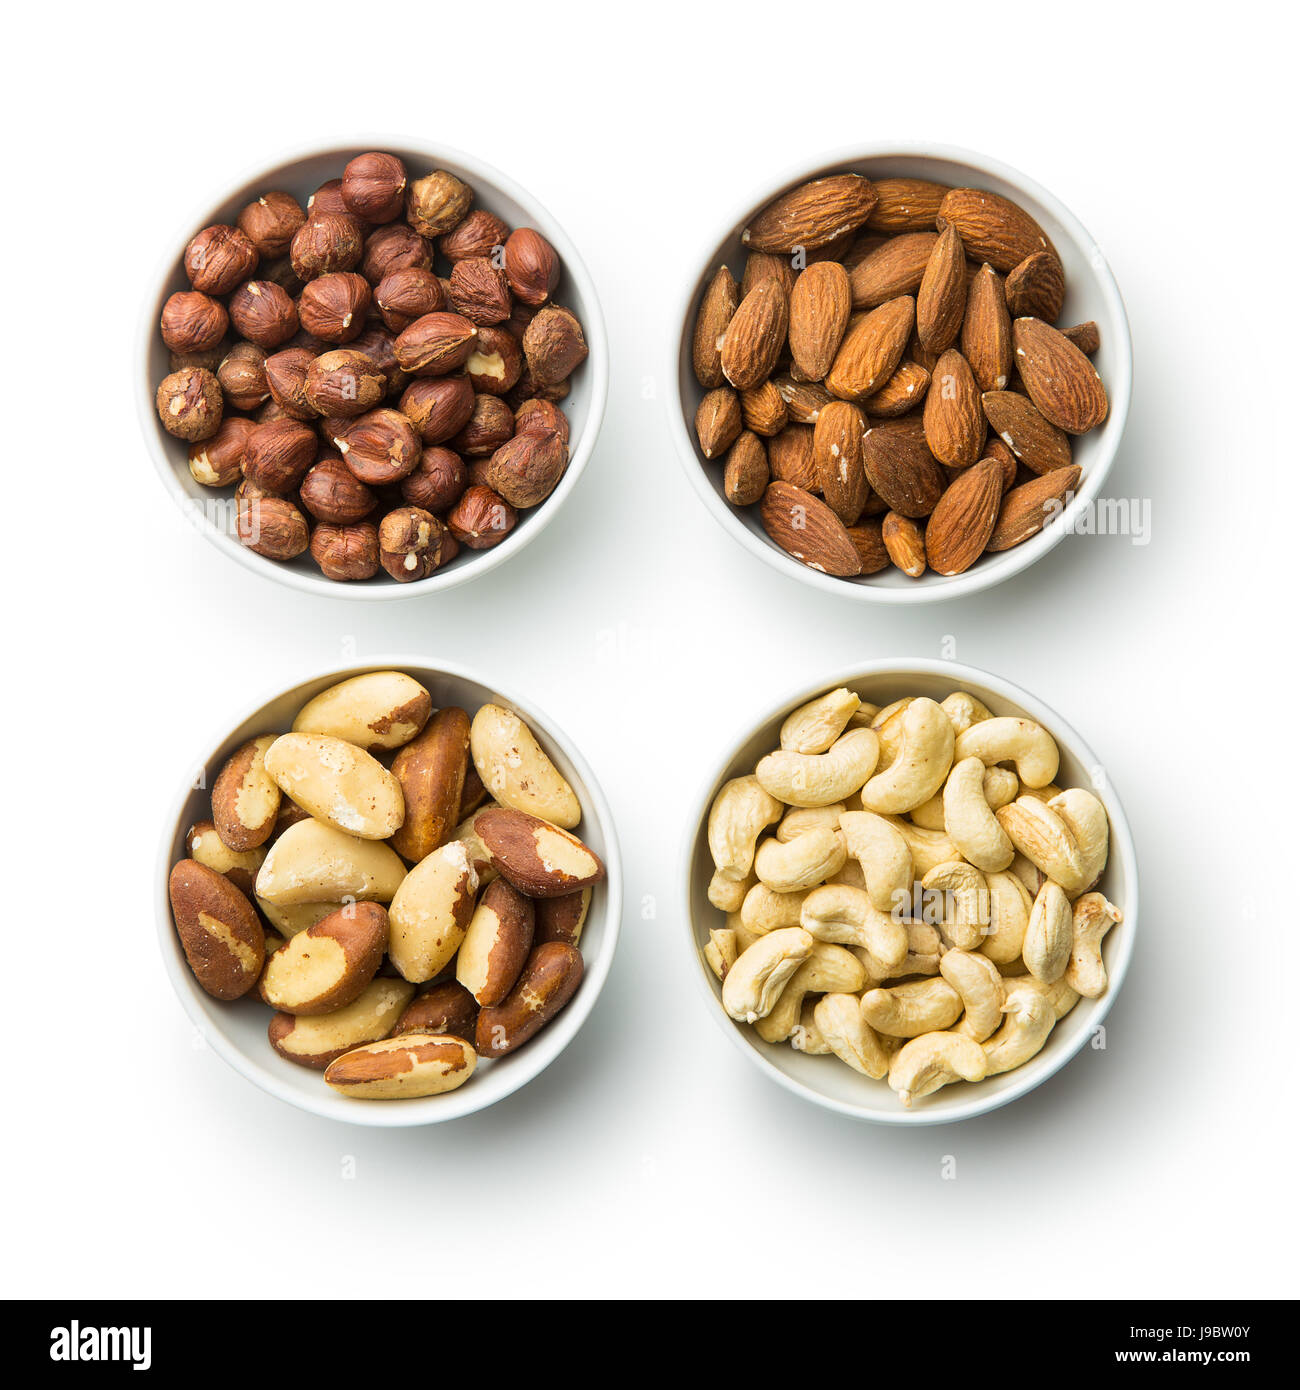 Are Brazil Nuts The Next Almonds recommend